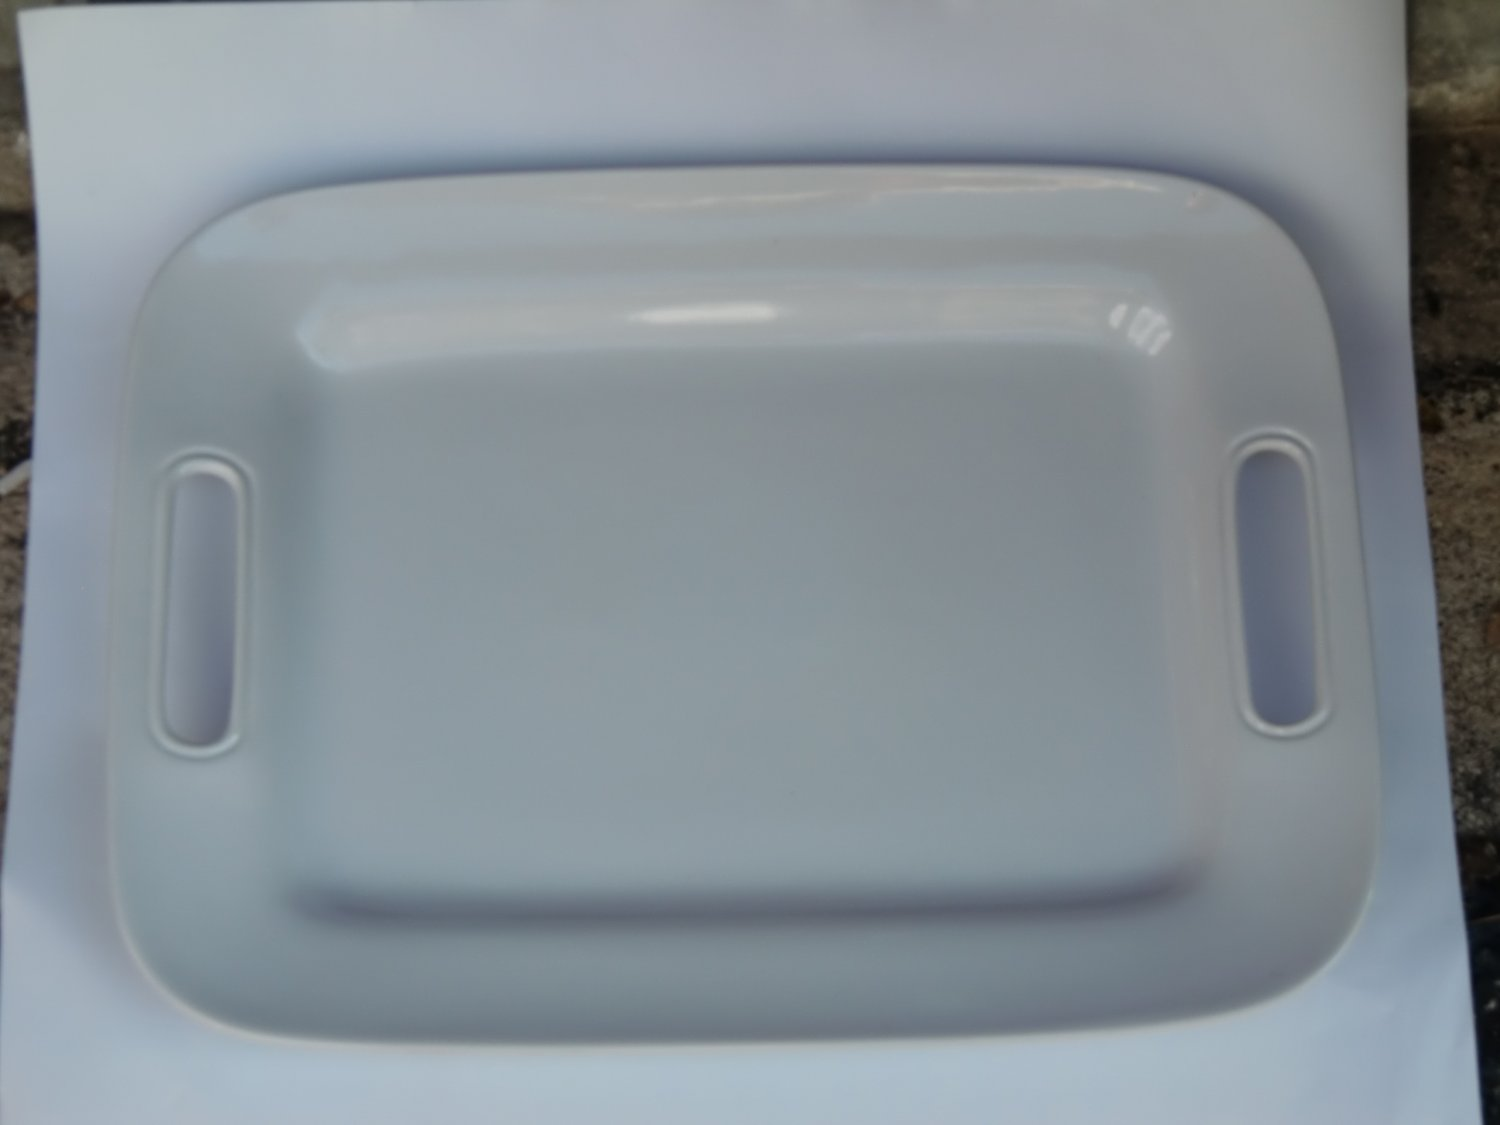 Pampered Chef Simple Additions Like New Large Rectangular Serving Platter with Handles #2026, White